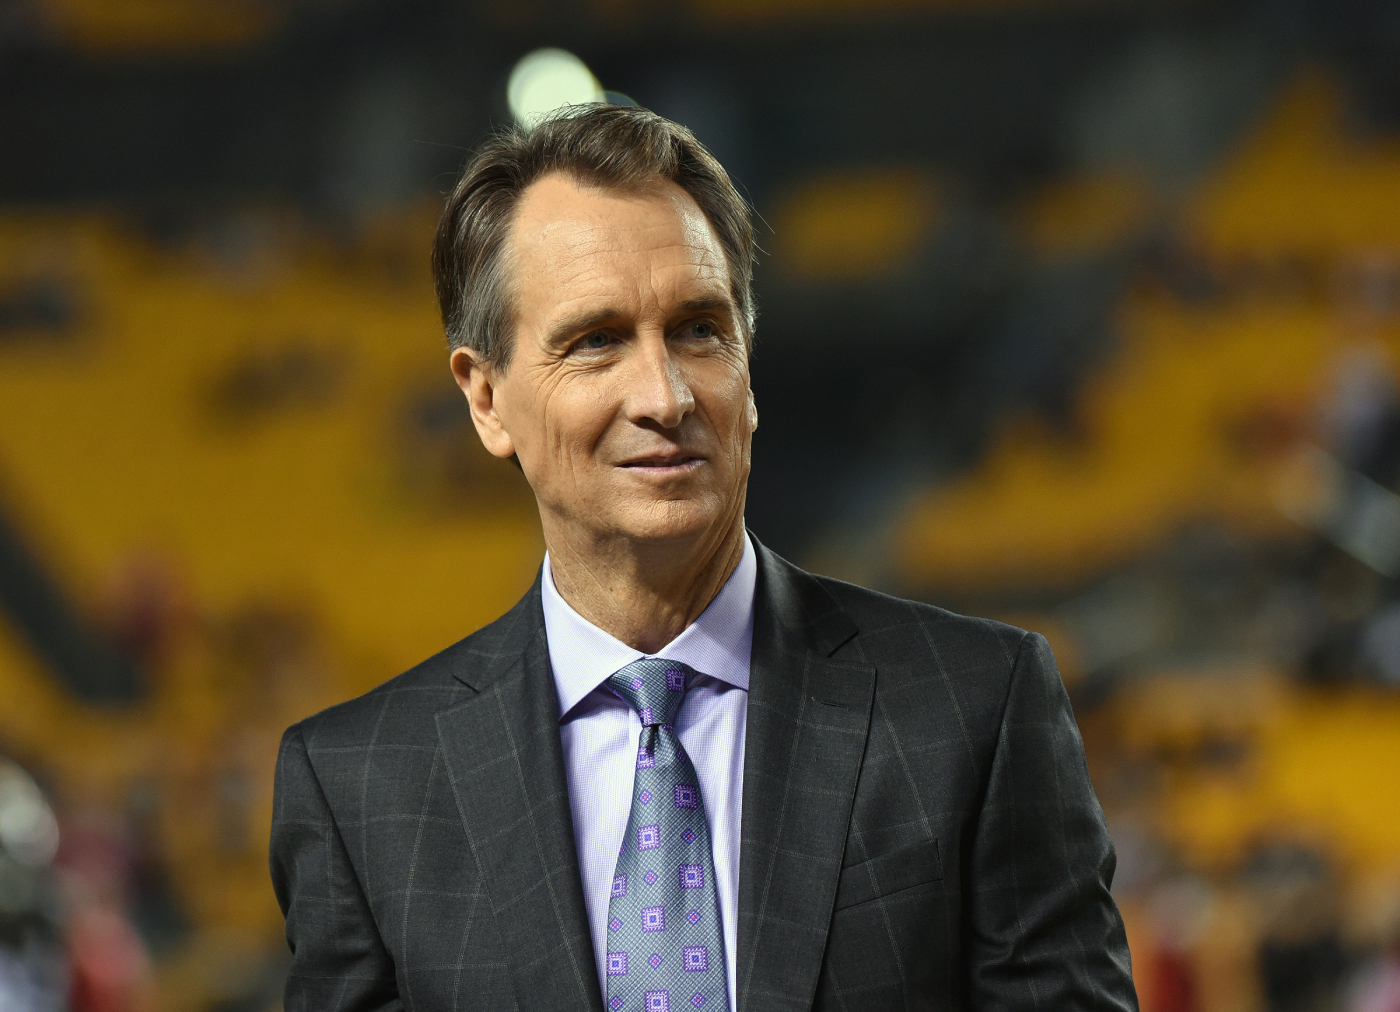 After a nice career with the Bengals, Cris Collinsworth has had a pretty successful career as a broadcaster. His son is now also successful.